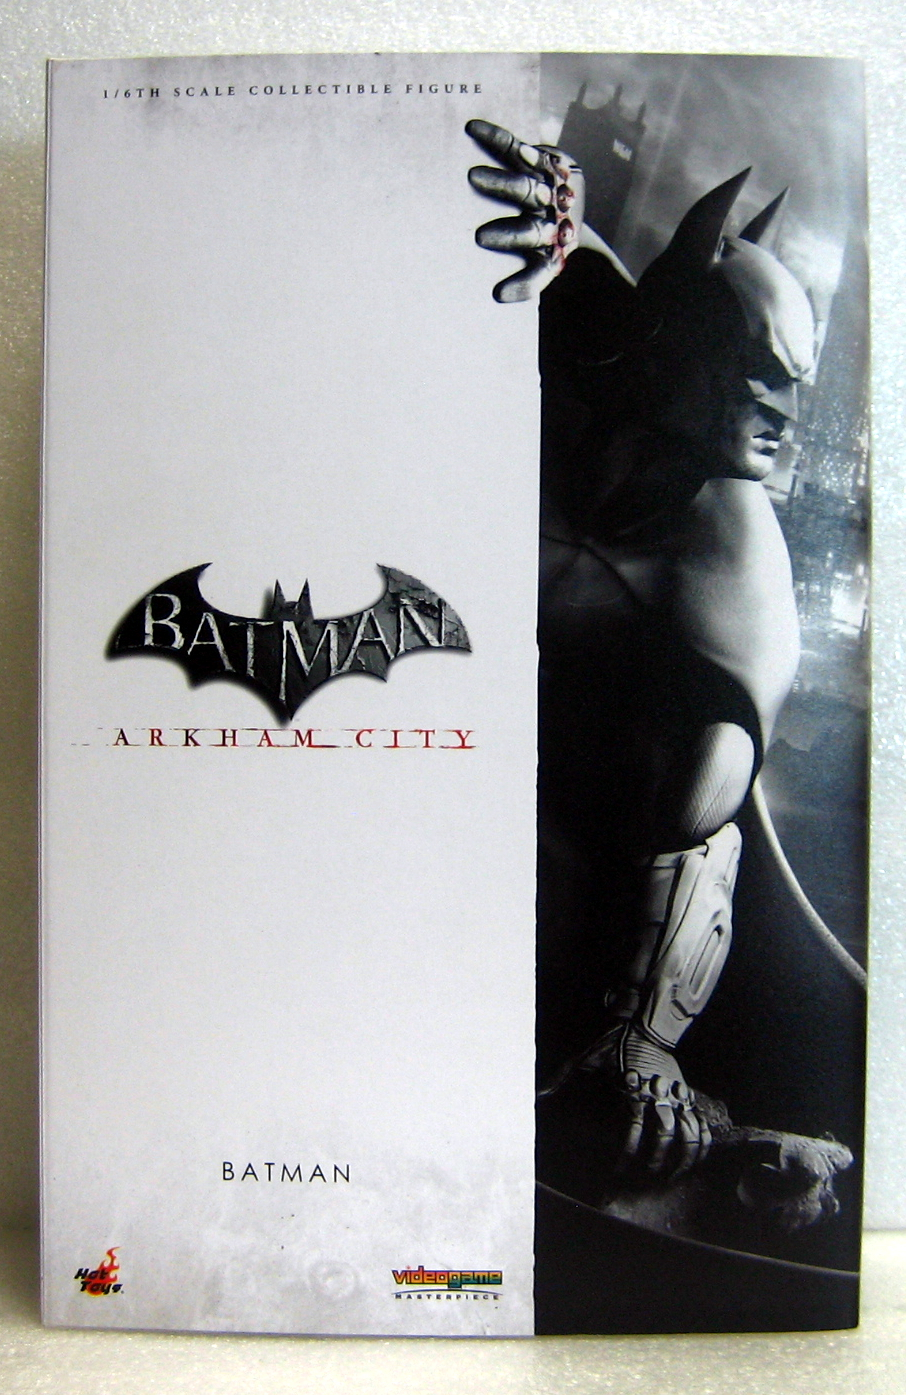 hot toys arkham city batman figure 1